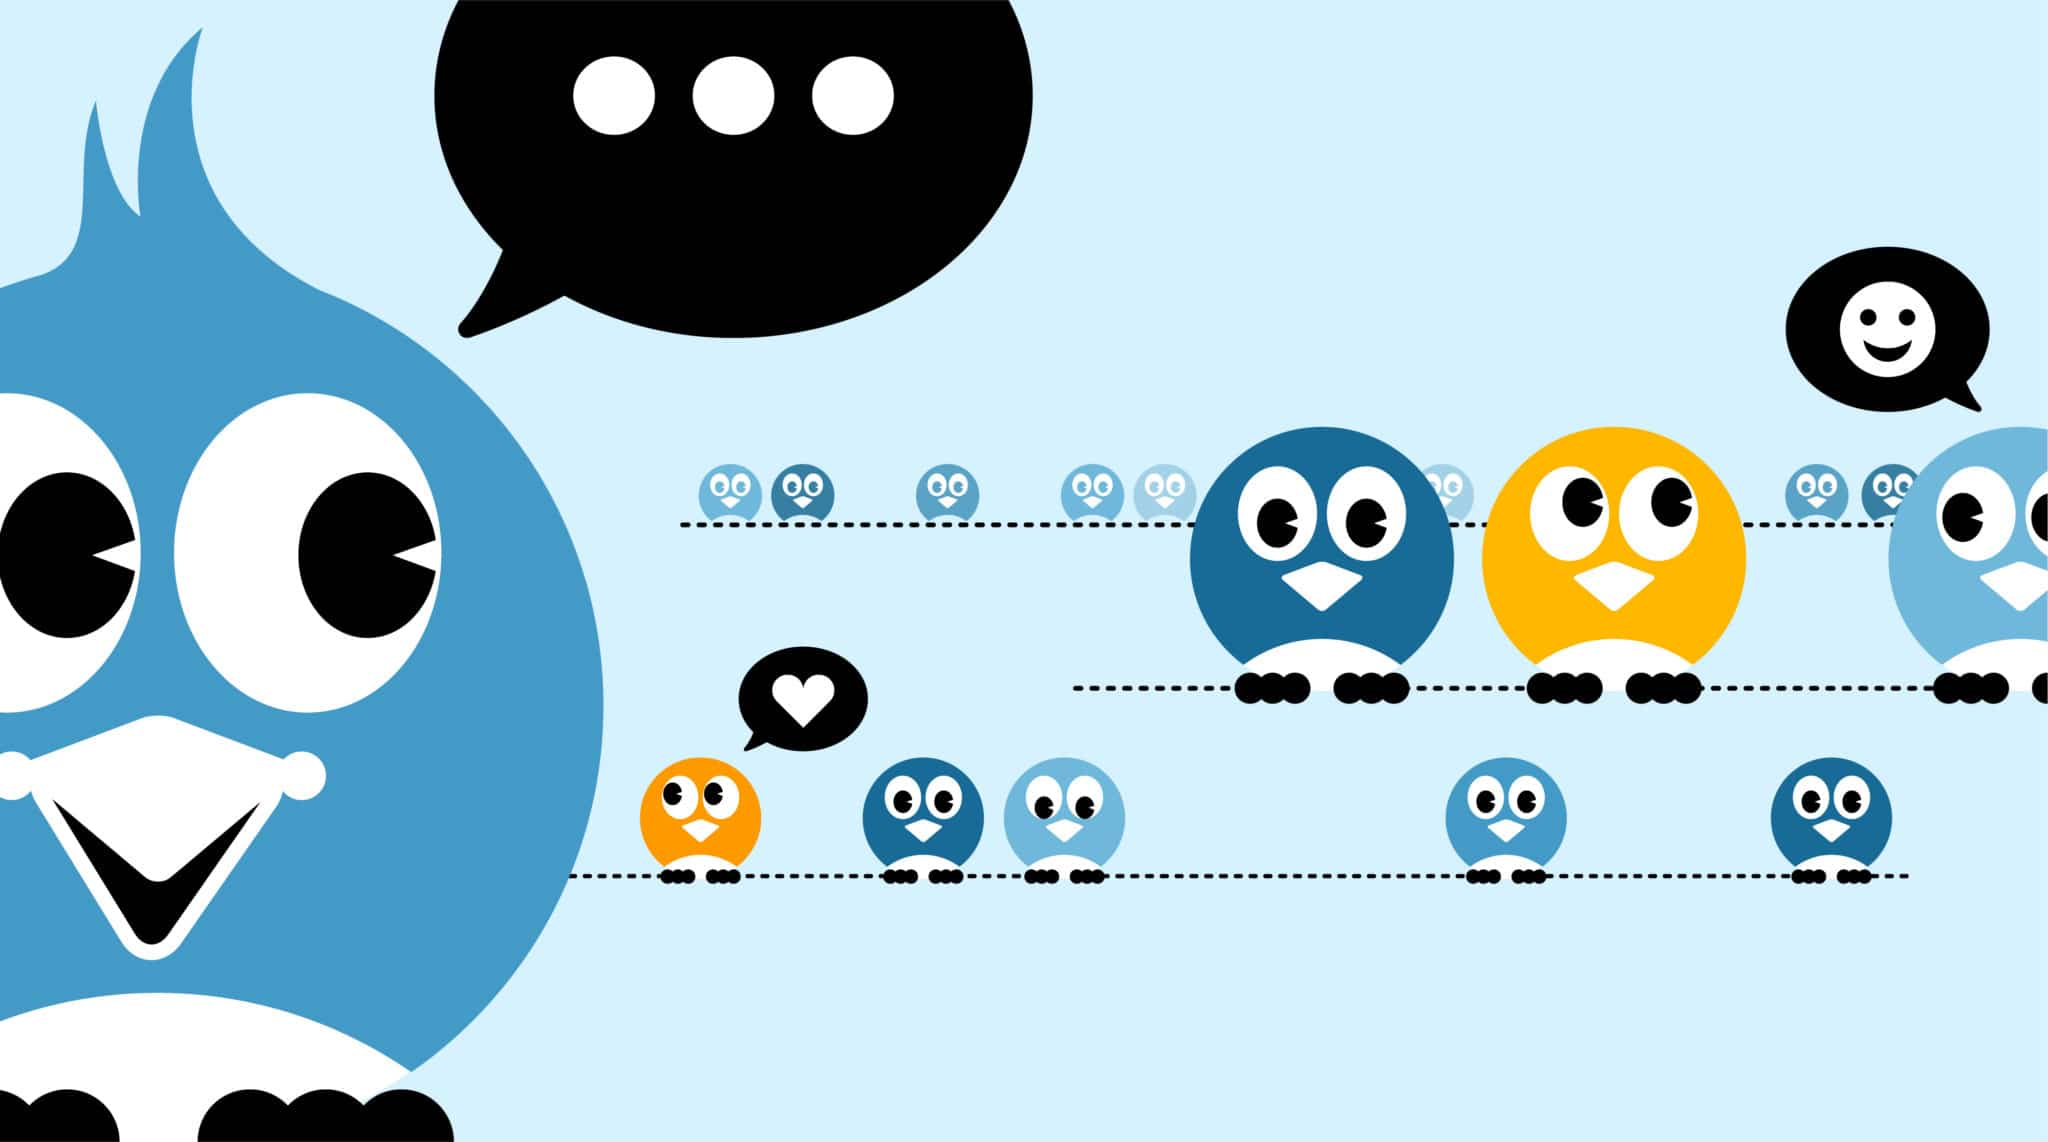 IBM Maximo: How to add Social Networking buttons to your application